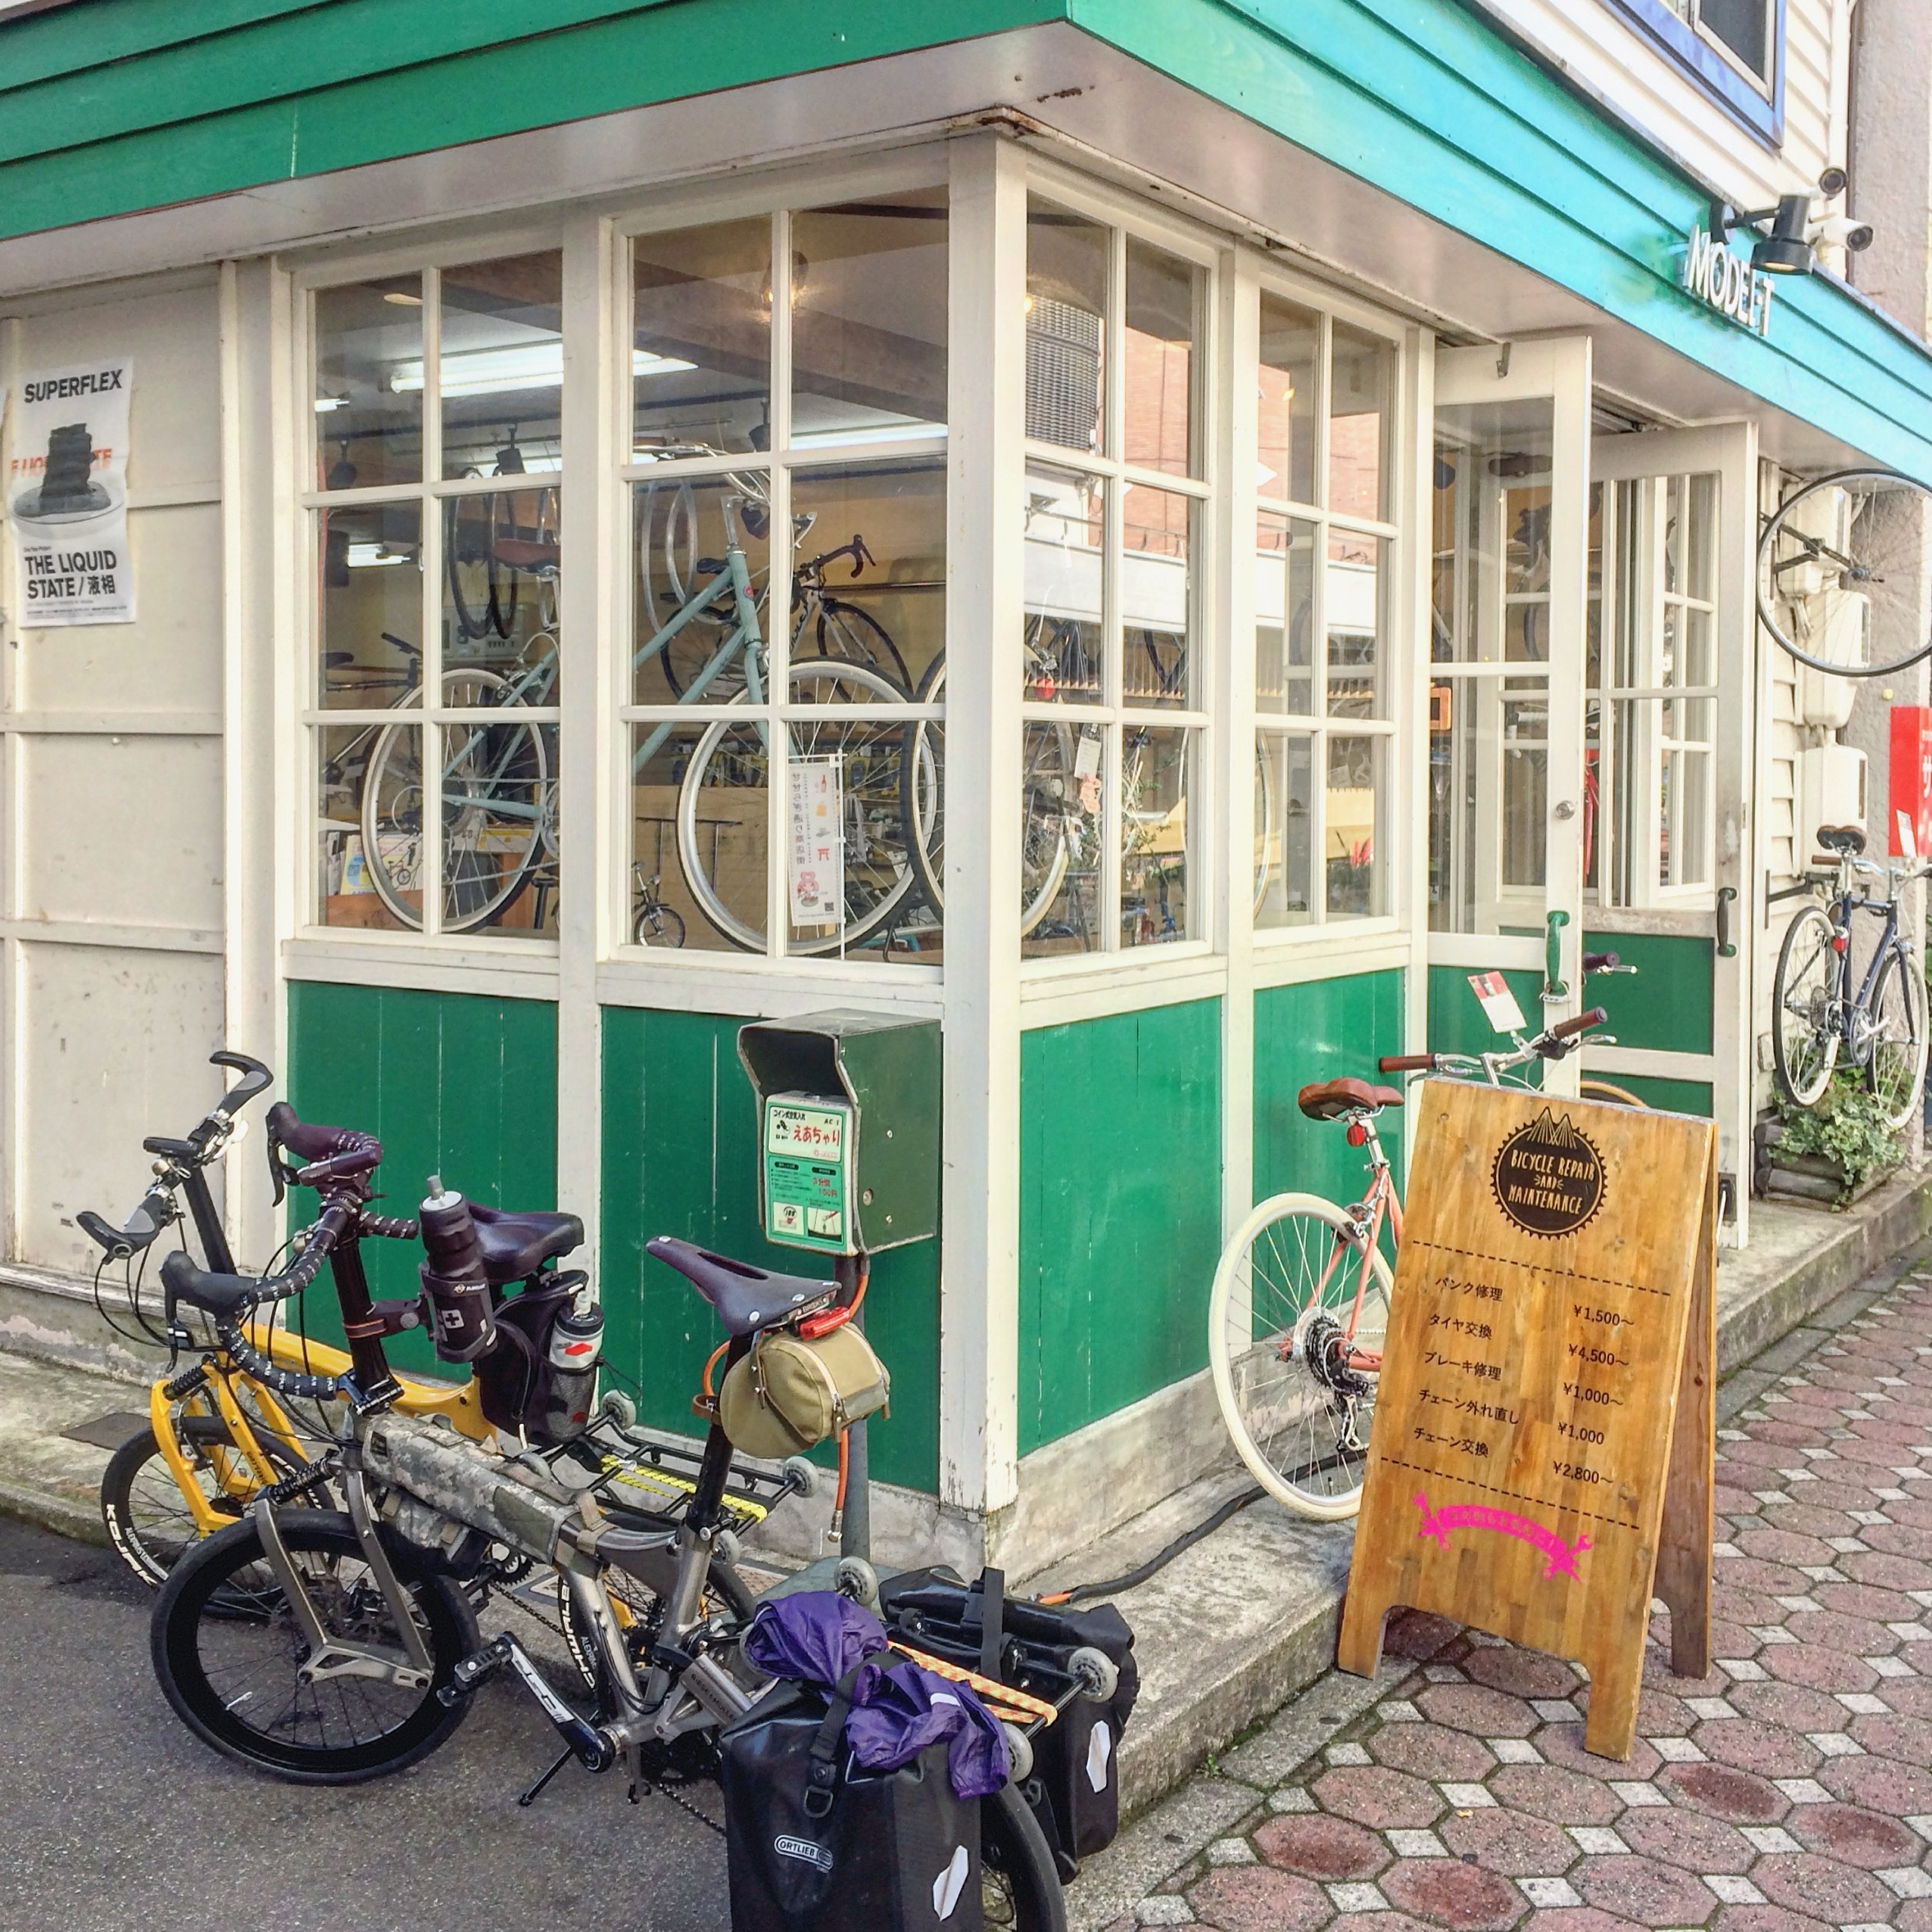 Prepped and serviced by the kind folks at Model T in Kanazawa. Ready for the long ride ahead!